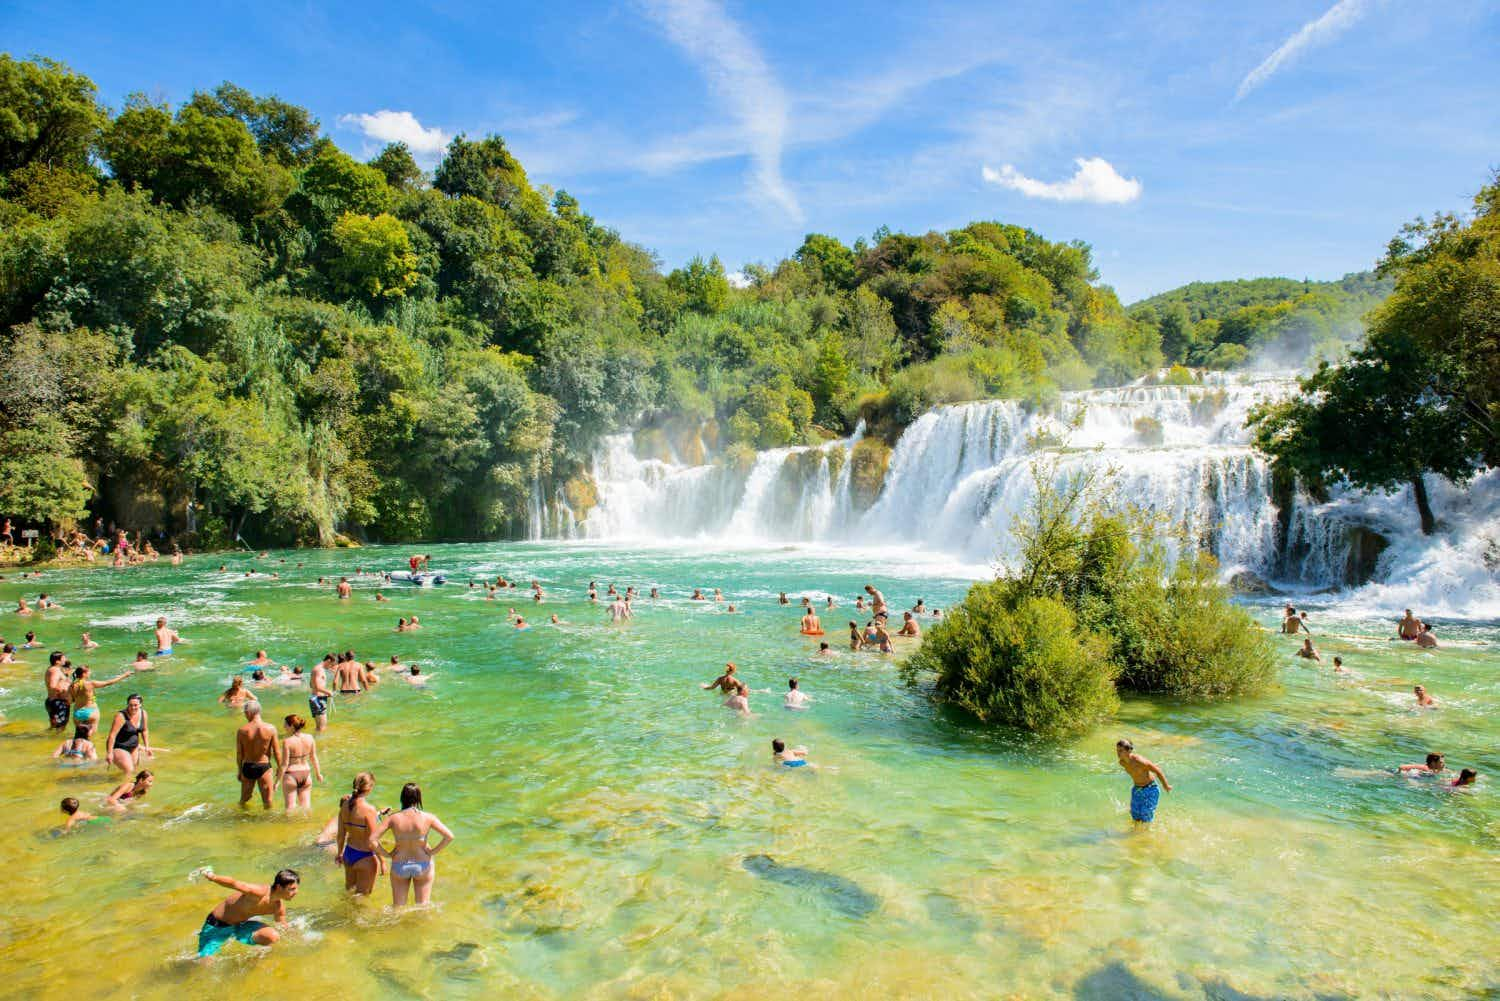 Croatia's Krka National Park waterfall limits visitor numbers to prevent overcrowding